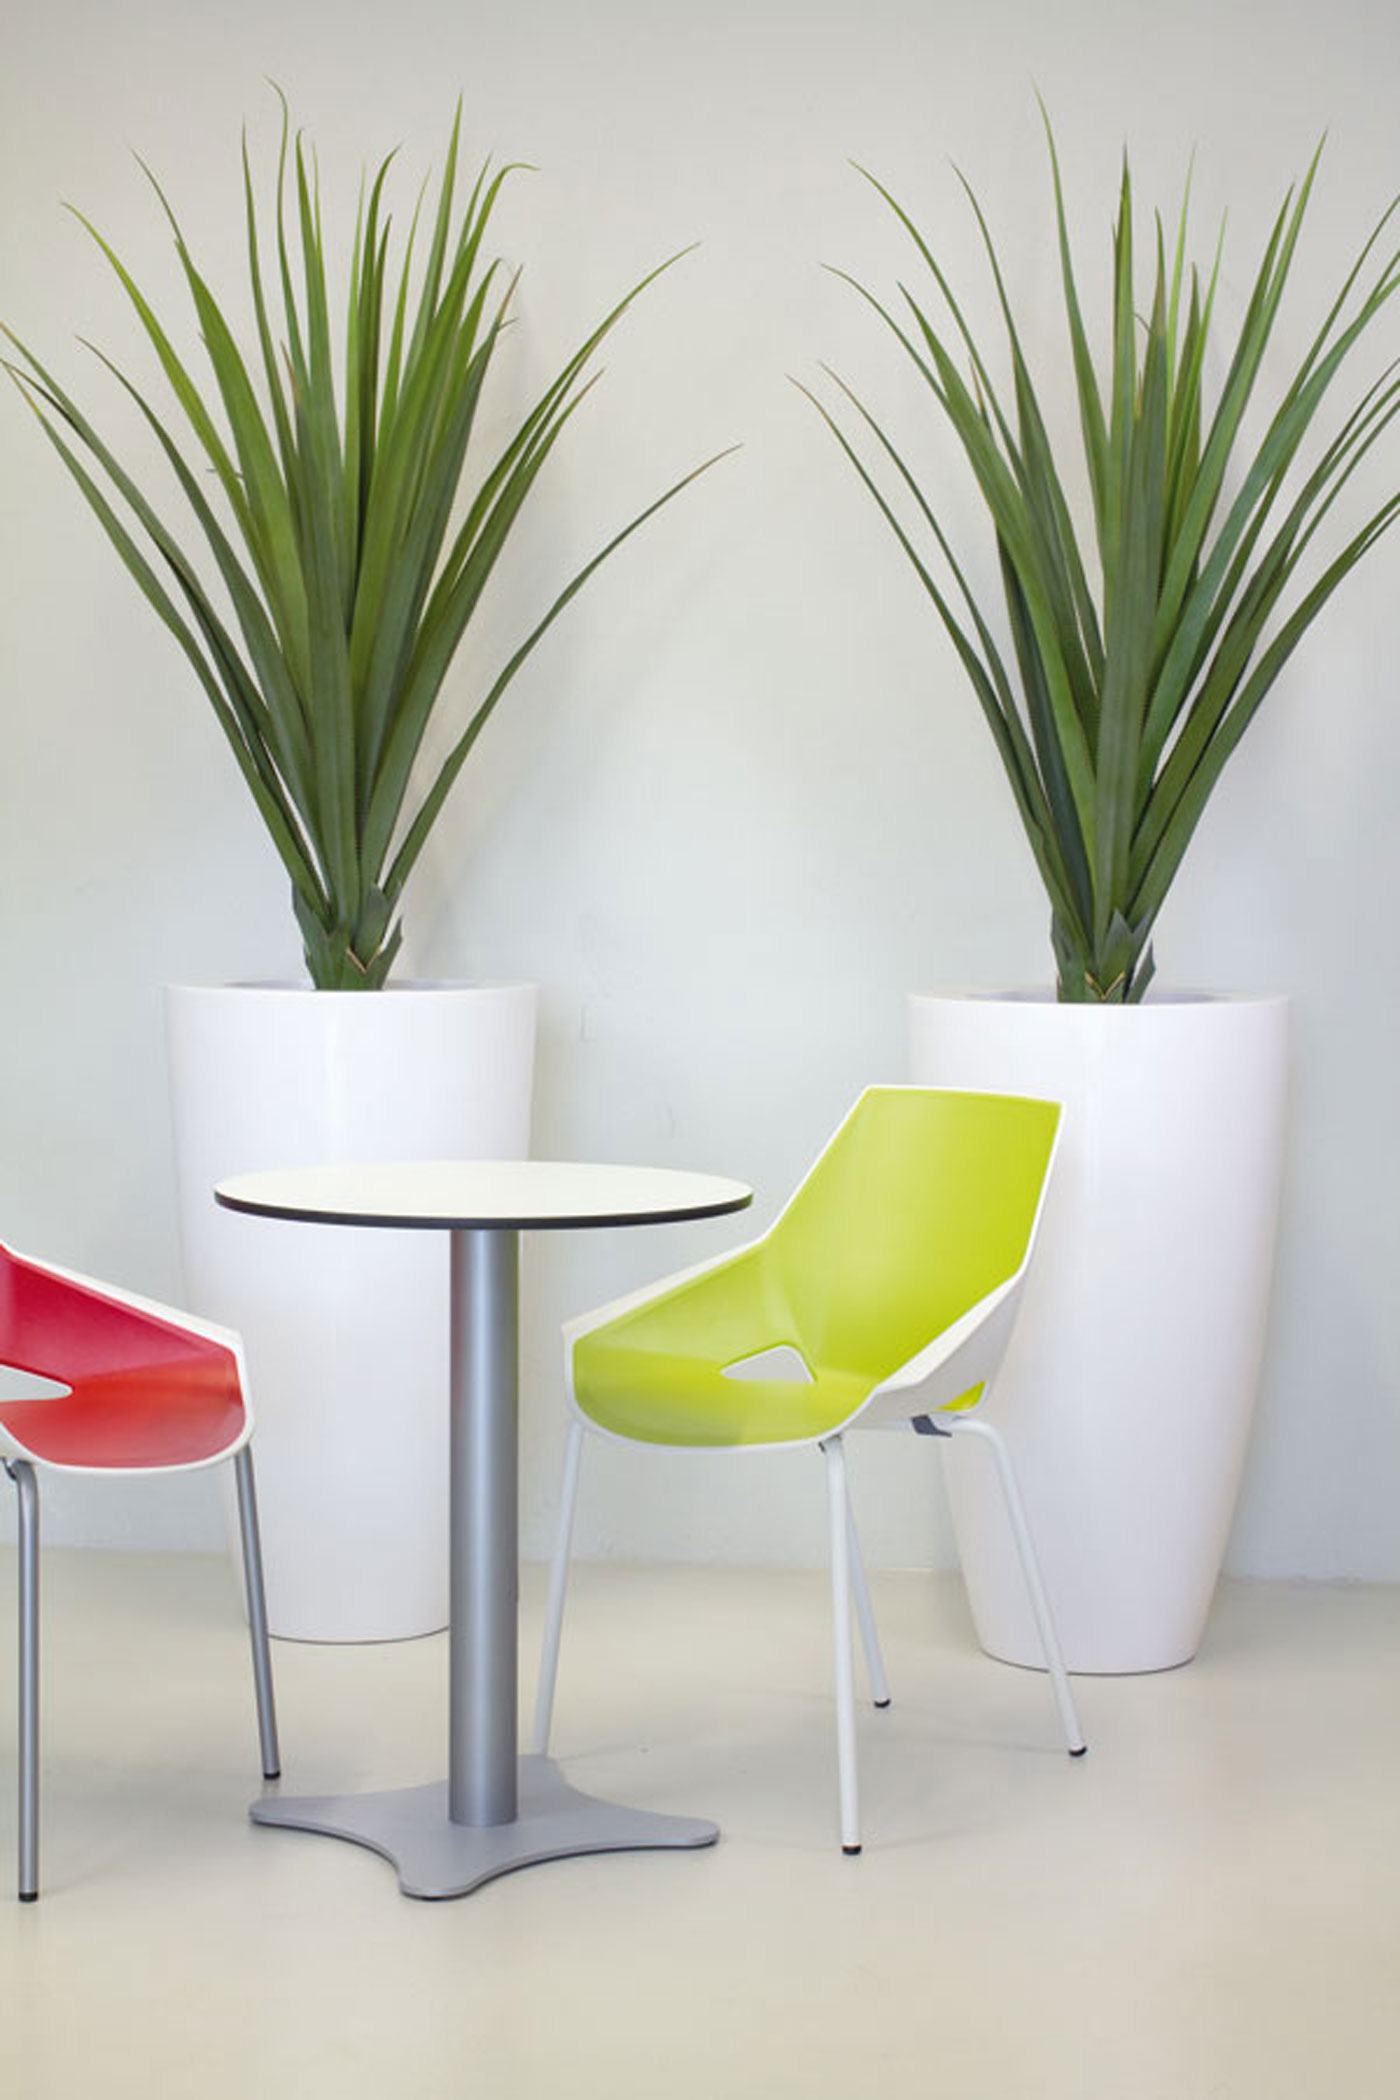 Artificial Plants for Offices | Office Landscapes